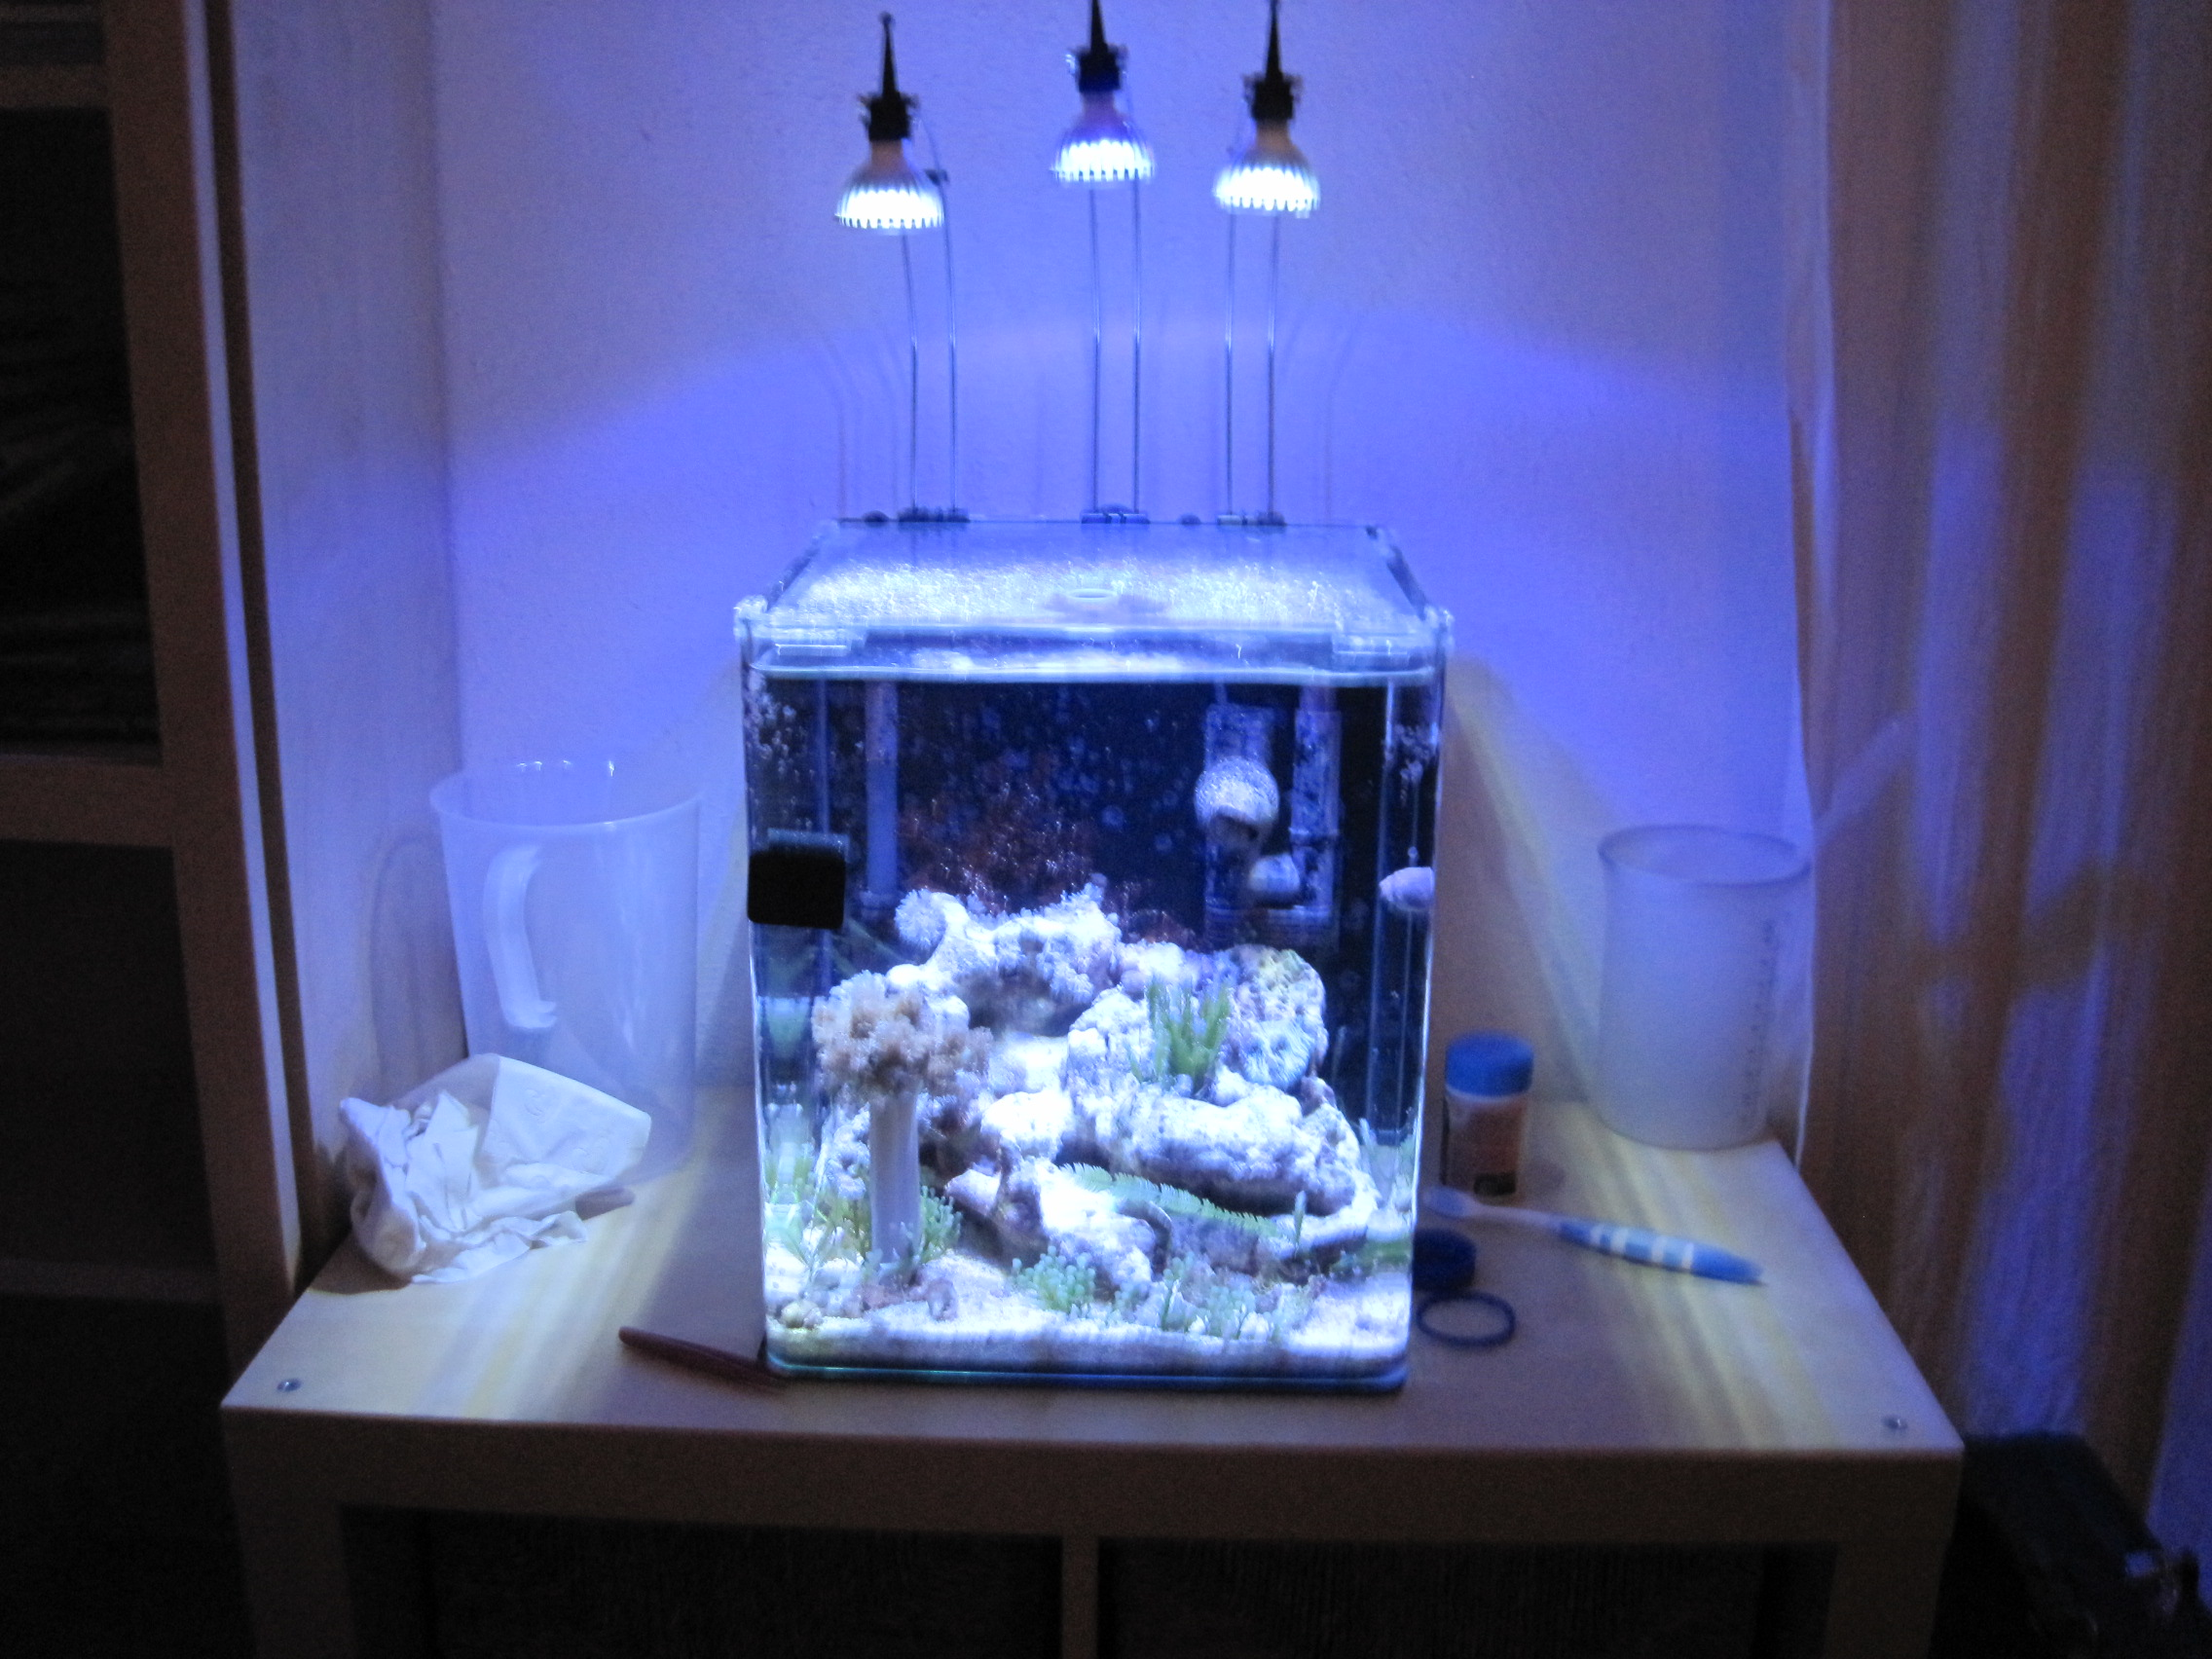 Eclairage Led Dennerle Ecoxotic Led Club Page 11 Lighting Forum Nano Reef